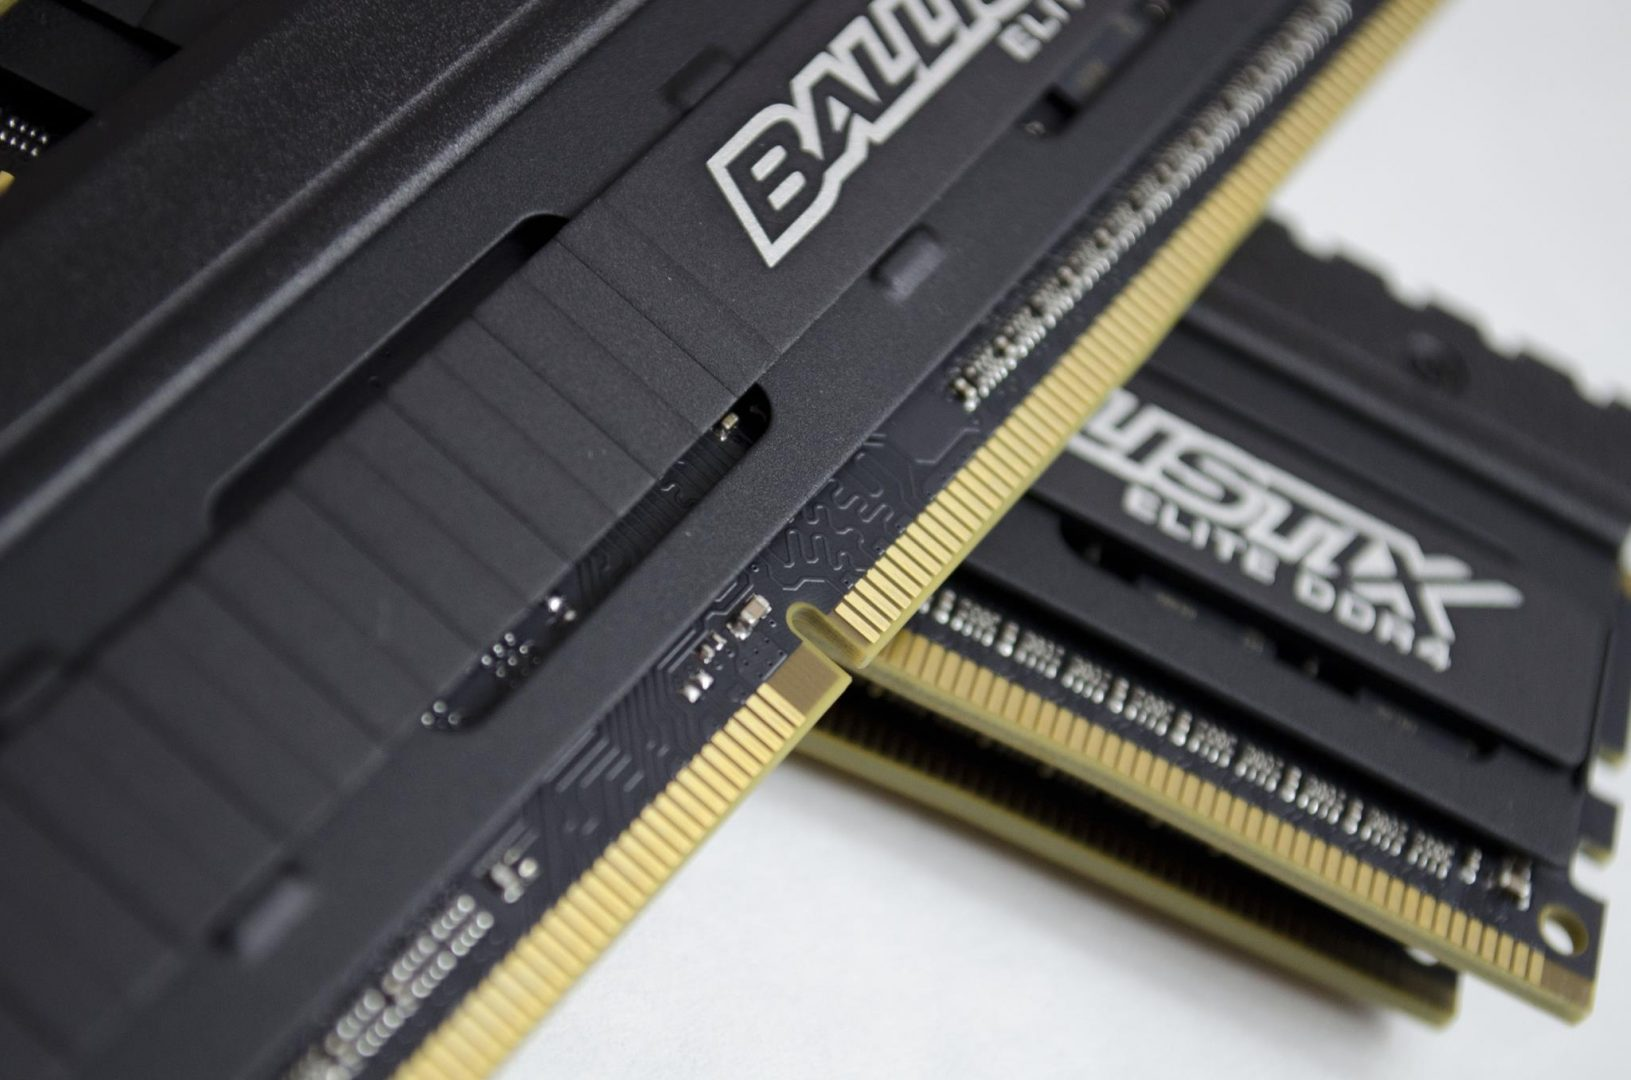 crucial ballistix elite ddr4 3200mhz ram review_6